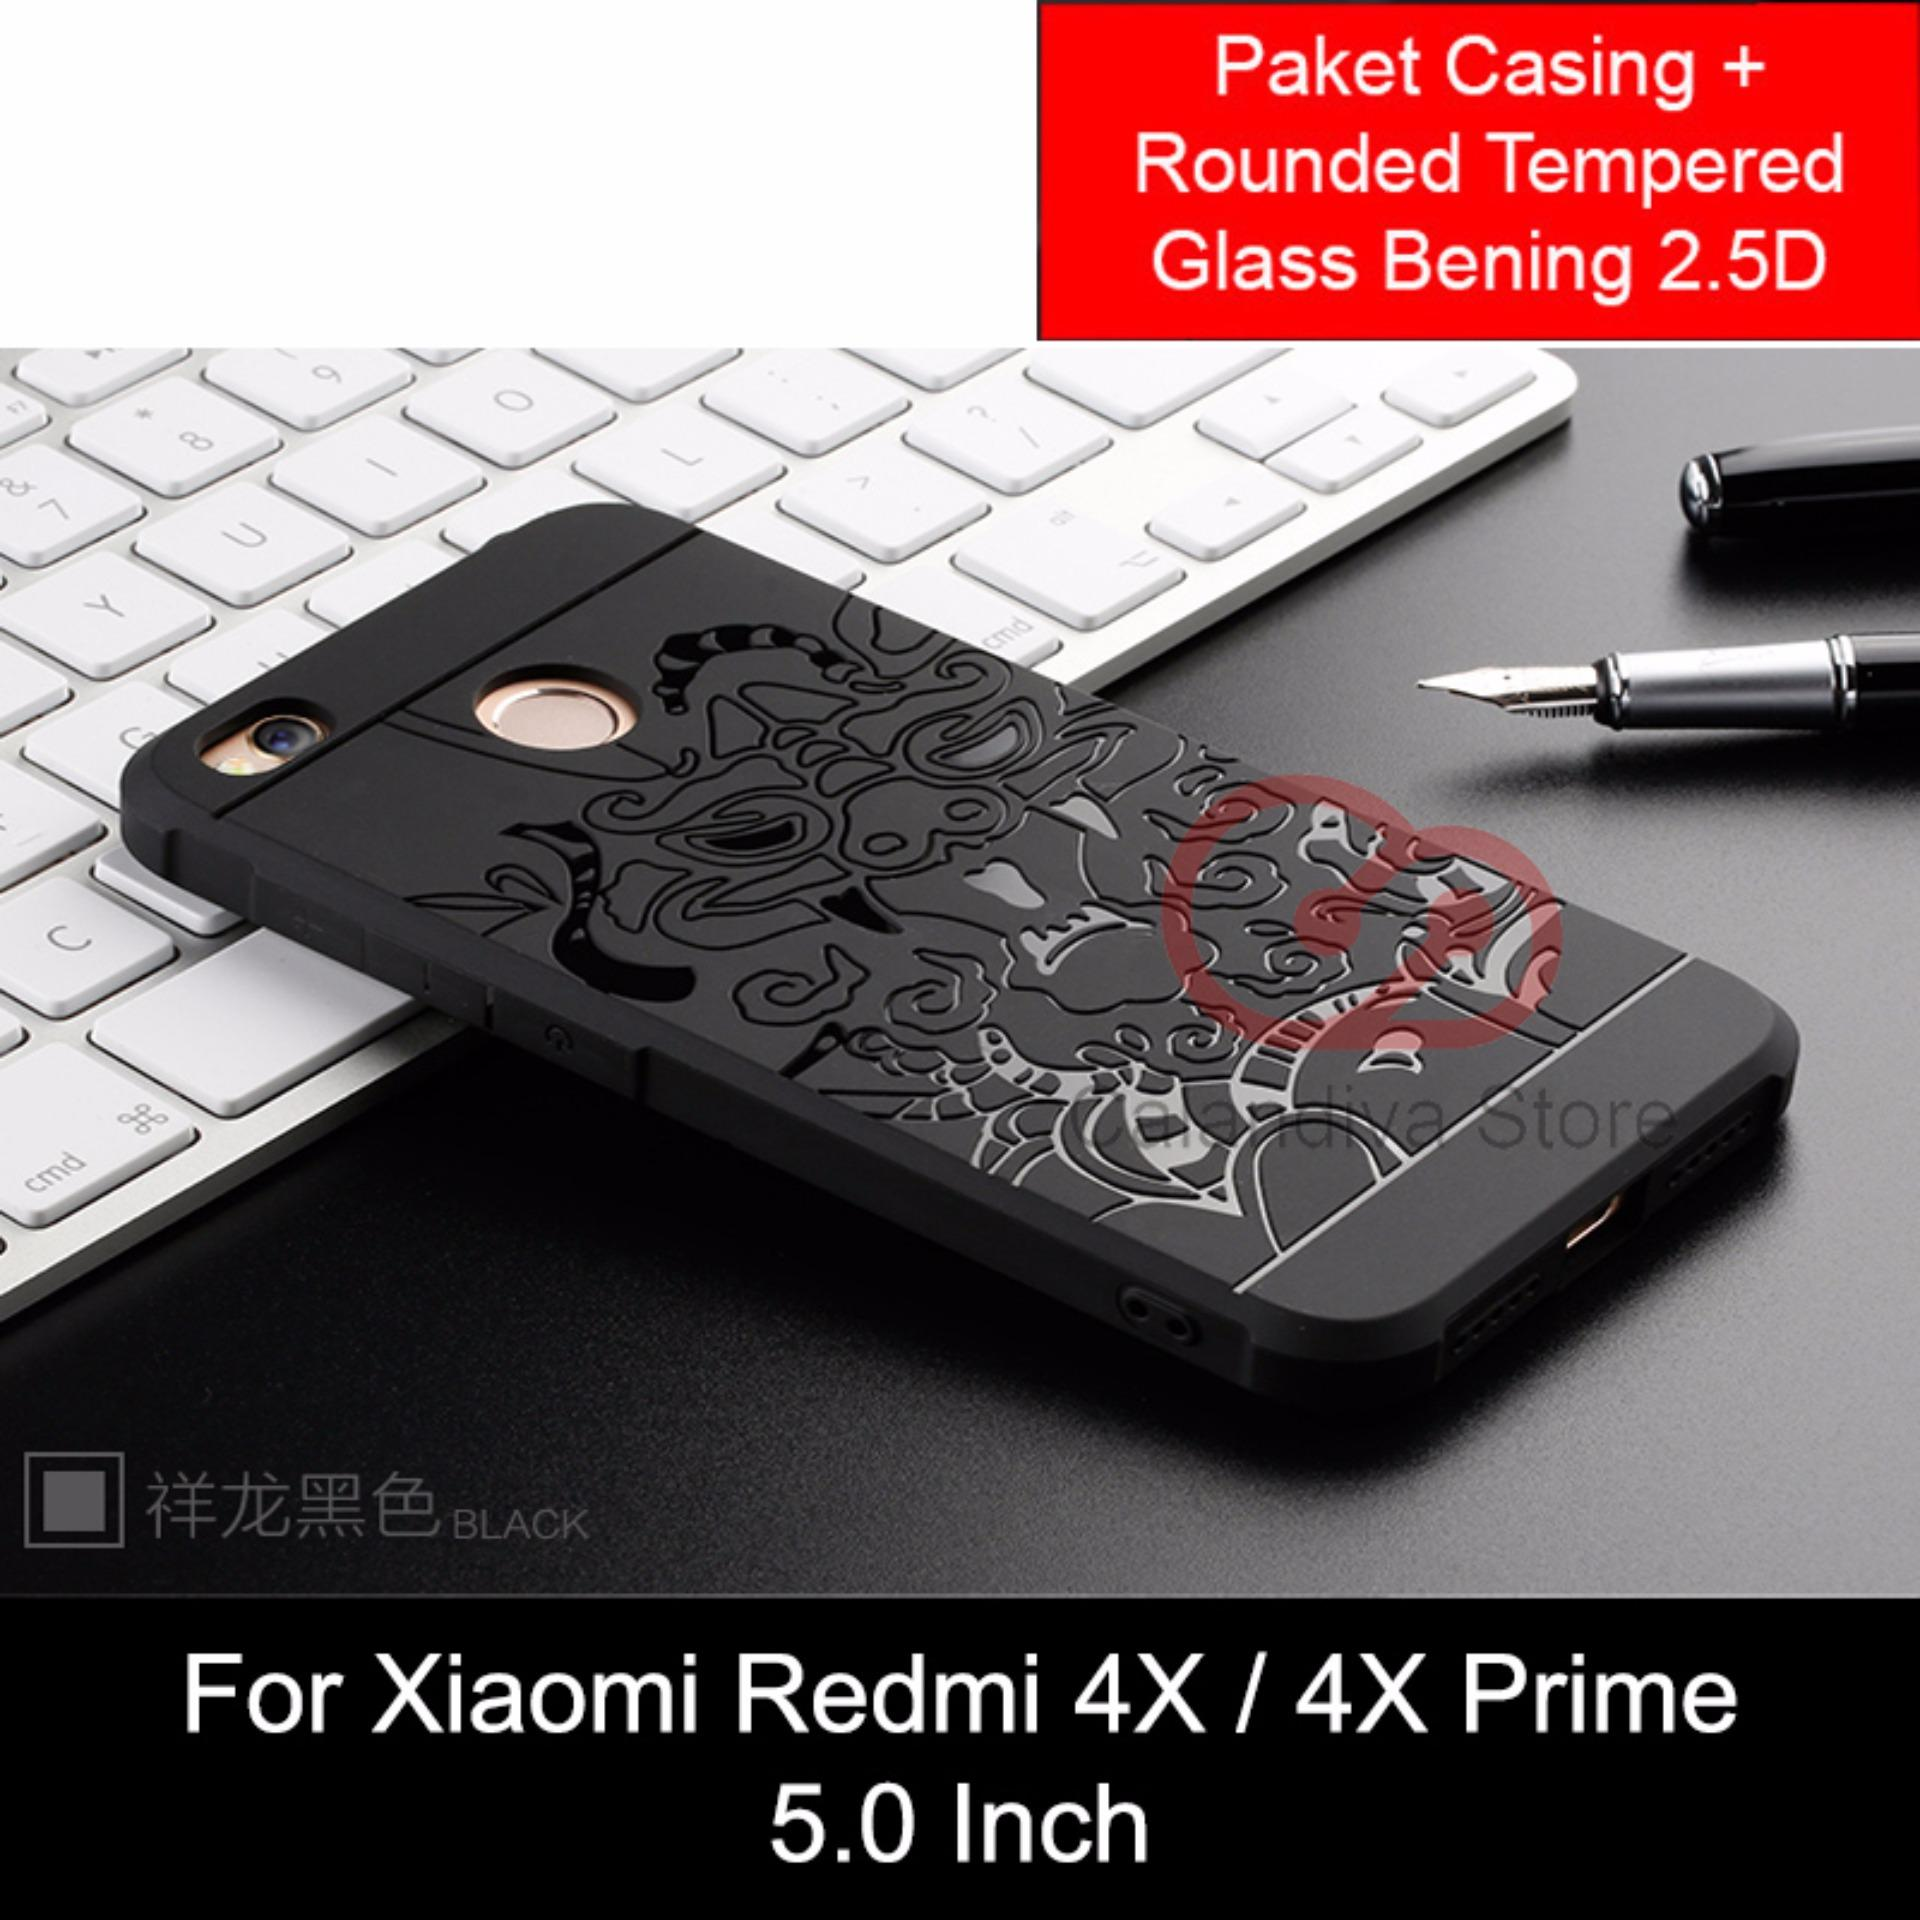 Calandiva Dragon Shockproof Hybrid Case for Xiaomi Redmi 4X / Redmi 4X Prime 5.0 inch - Hitam + Rounded Tempered Glass